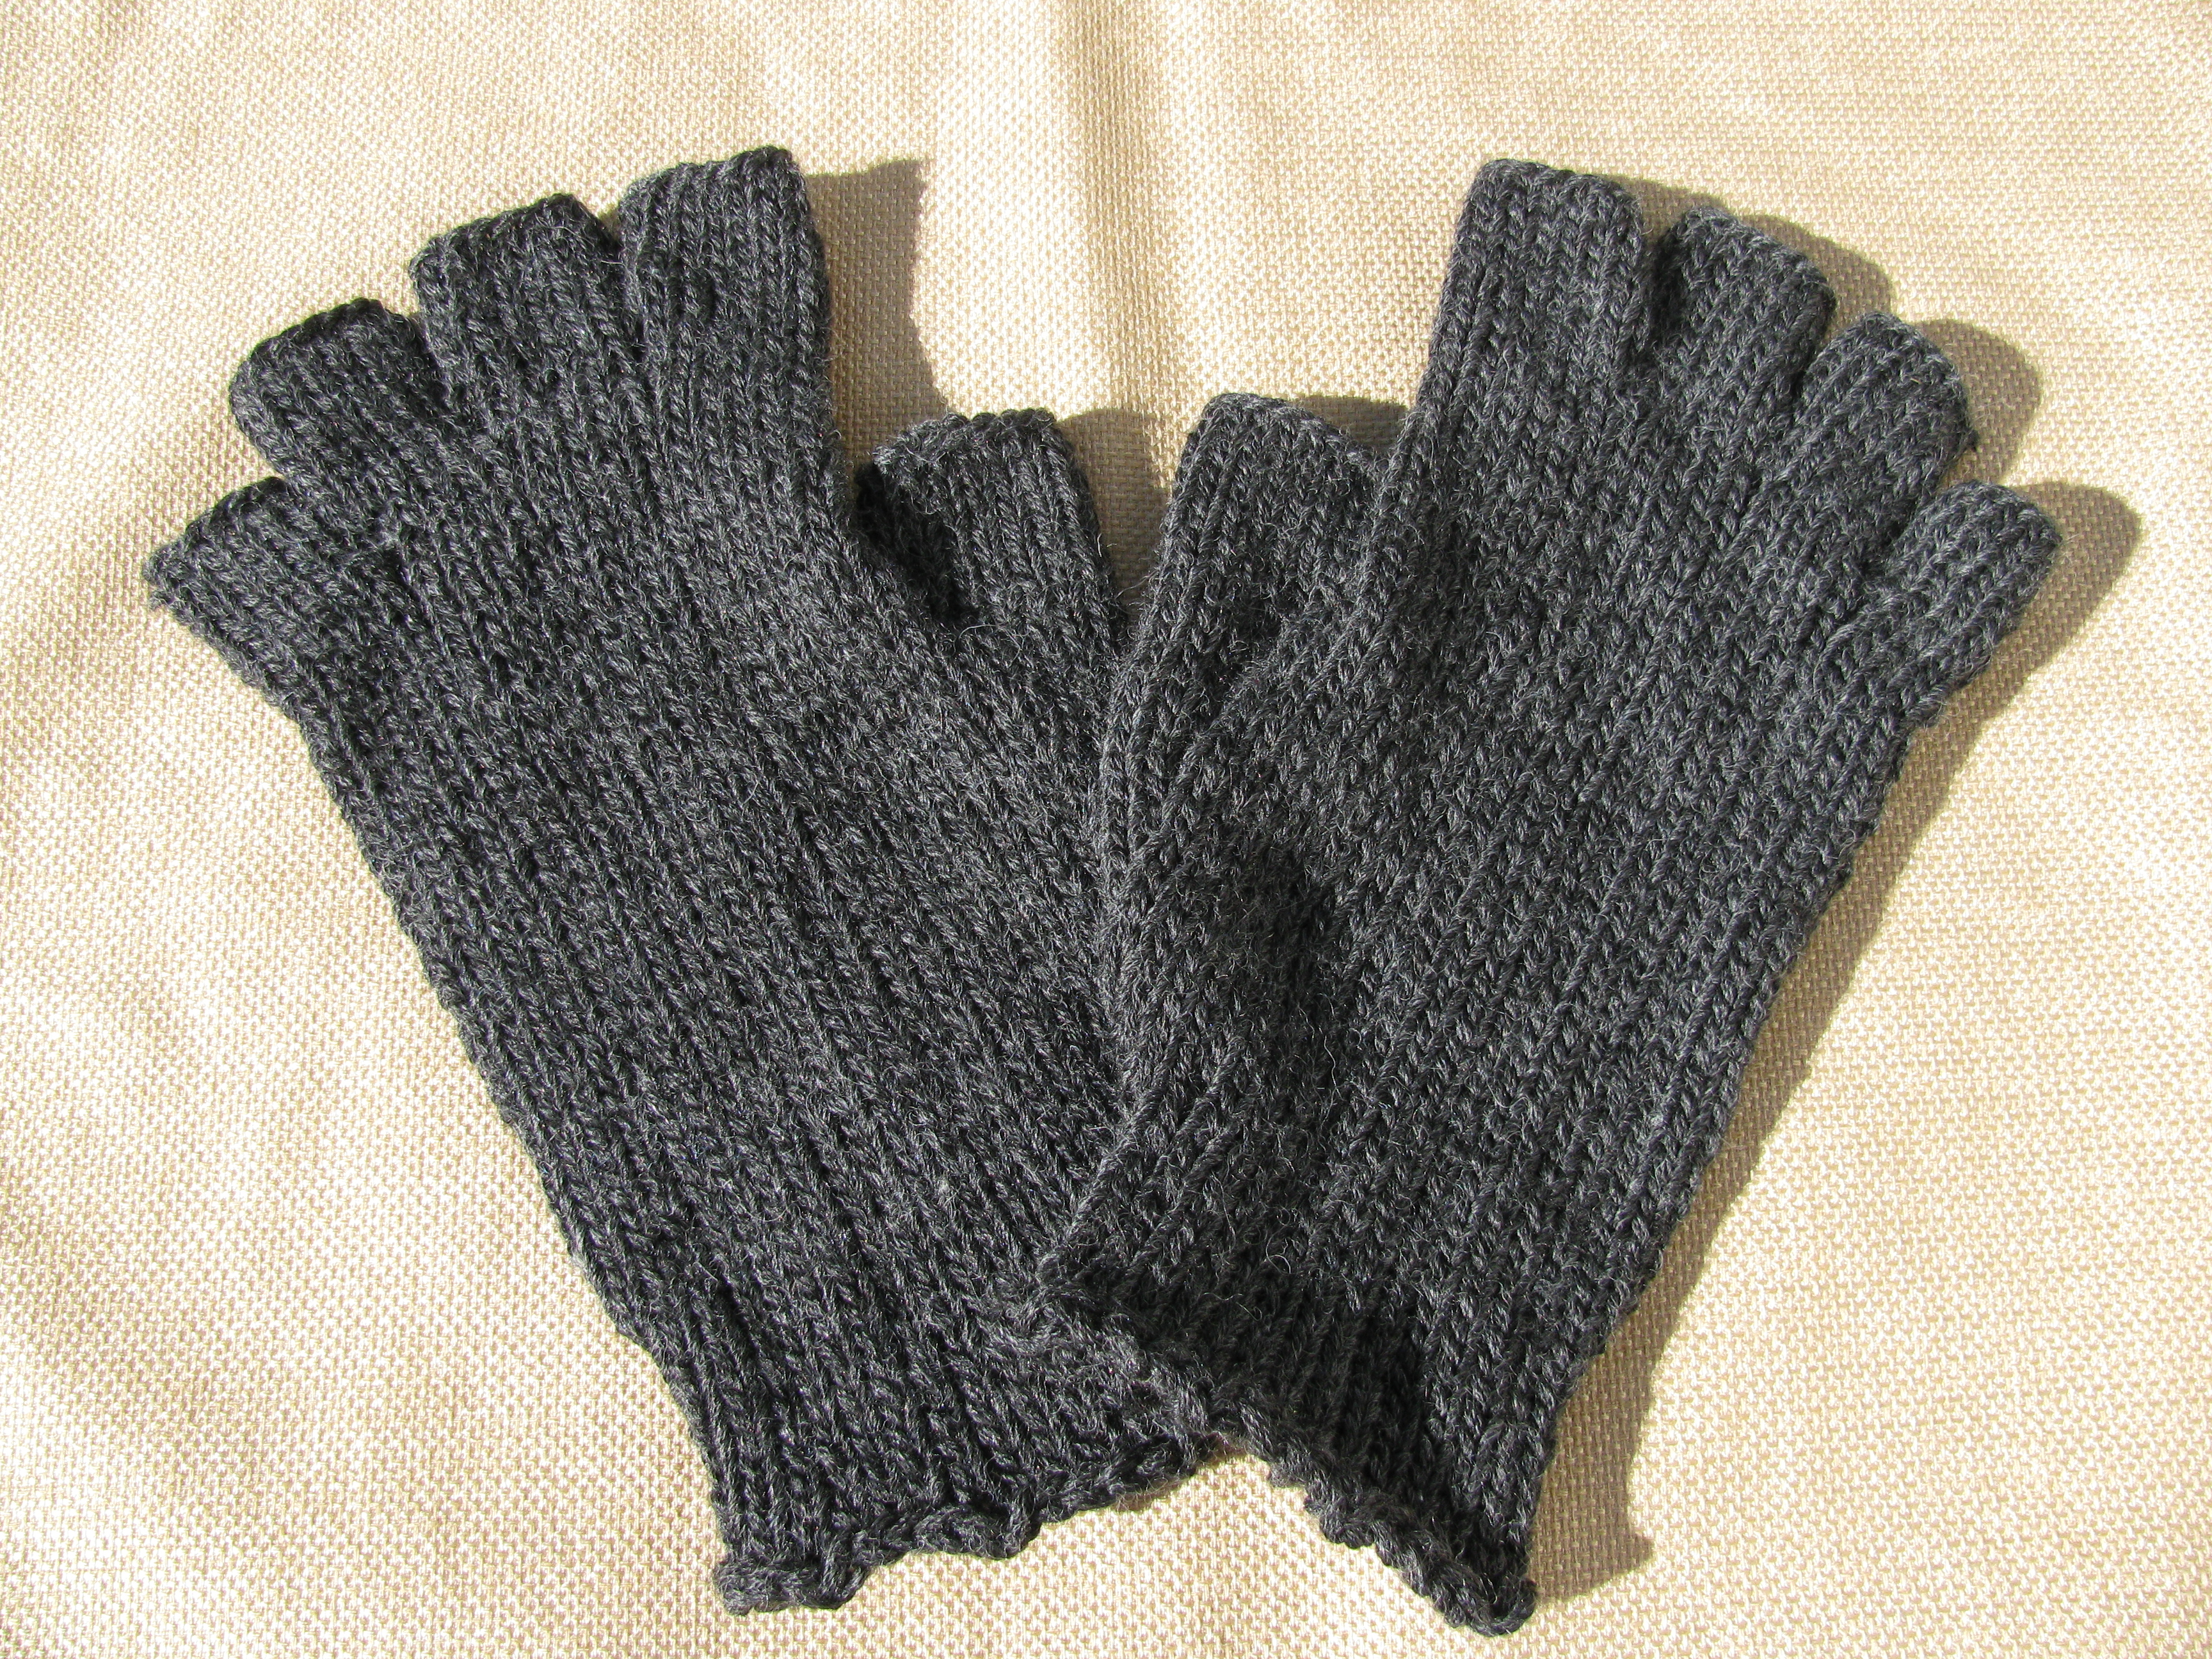 Fingerless gloves canada - Mens Fingerless Gloves Ready To Ship